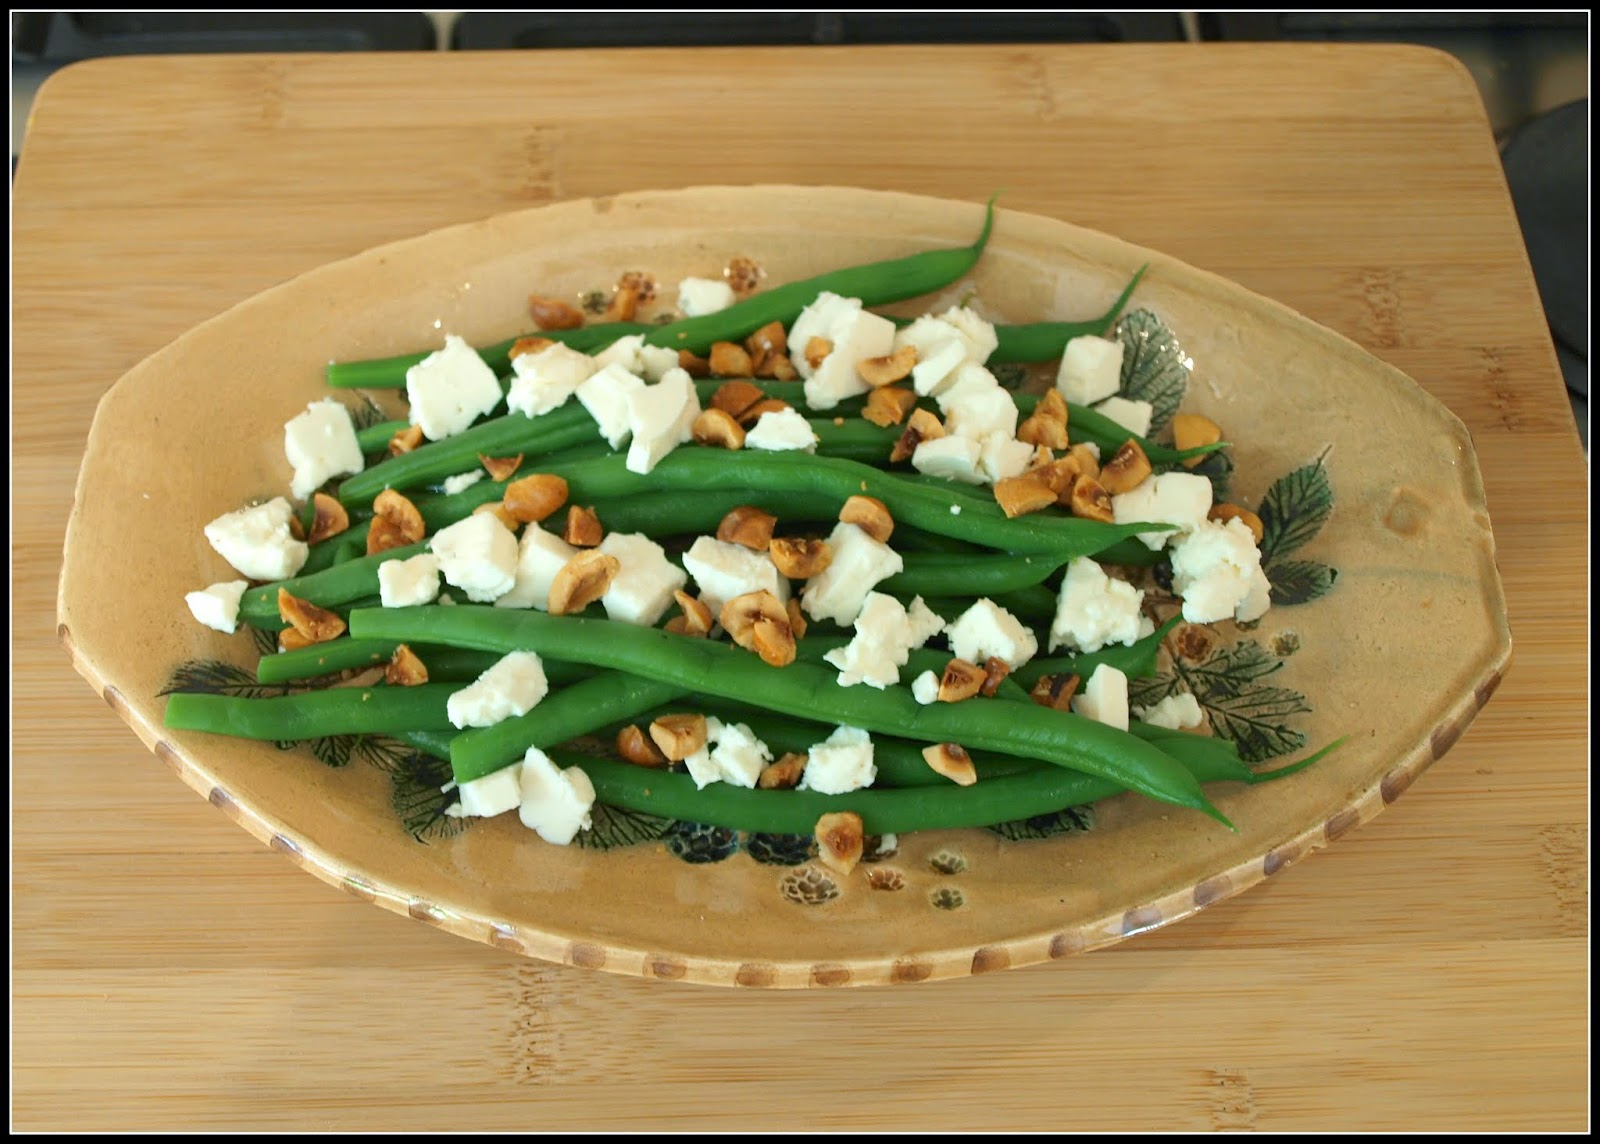 Green Bean salad, with Feta and Hazelnuts.